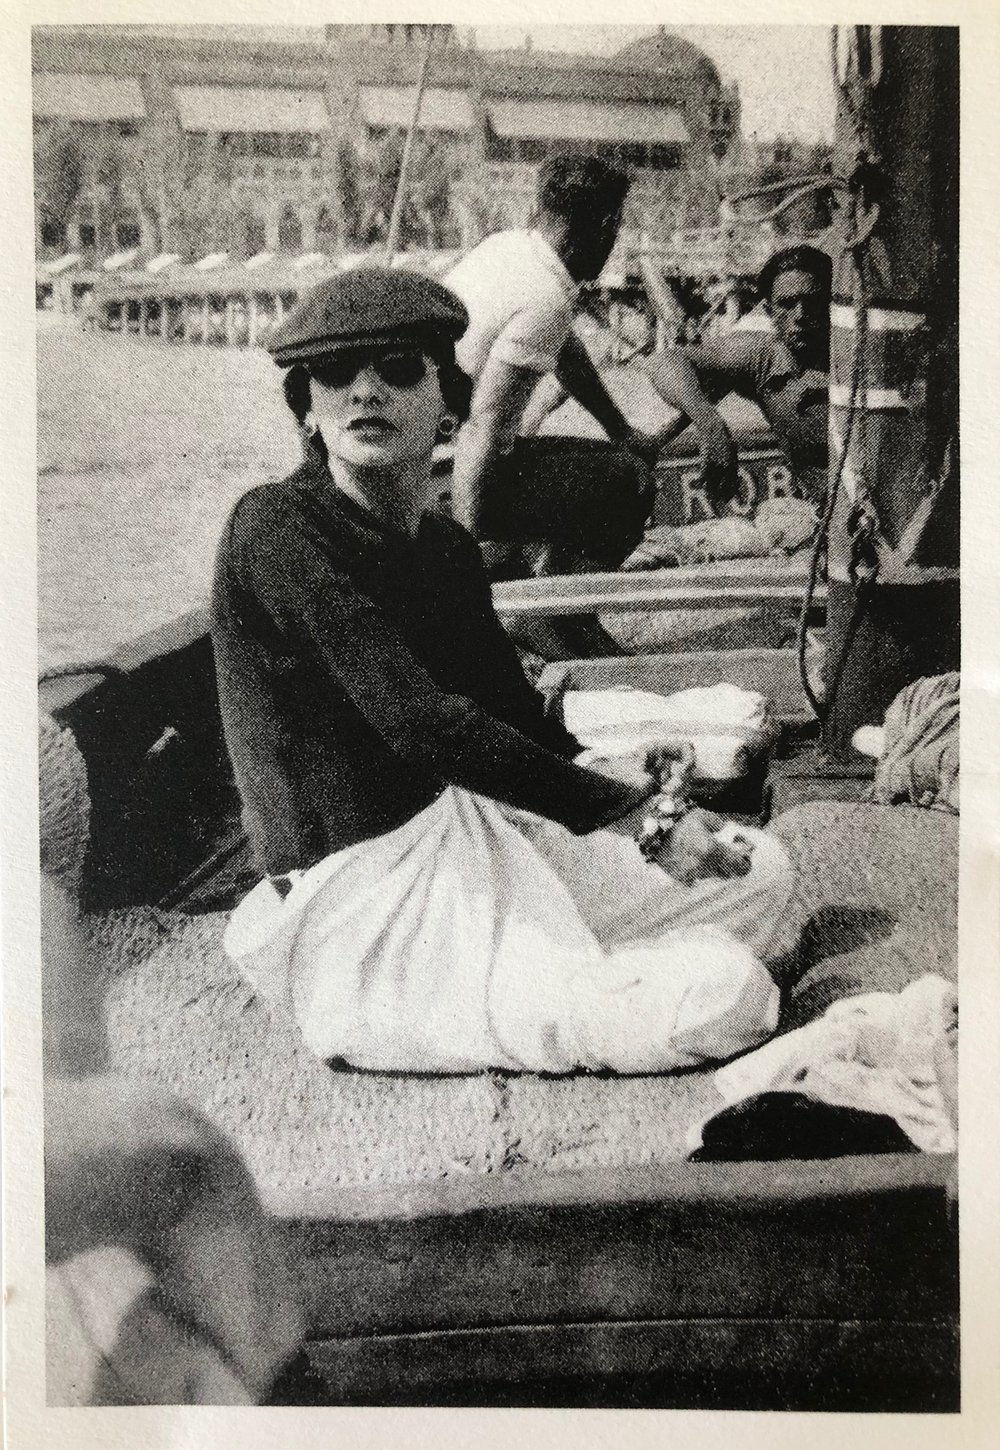 In 1920, Mademoiselle was incosolable. To erase the memory of Boy Capel who died tragically in a car accident in December 1919, Misia and the painter José Maria Sert invited her to Venice. For Gabrielle Chanel, Venise was a restorative, inspirational whirlwind that reignated her creative spark. -